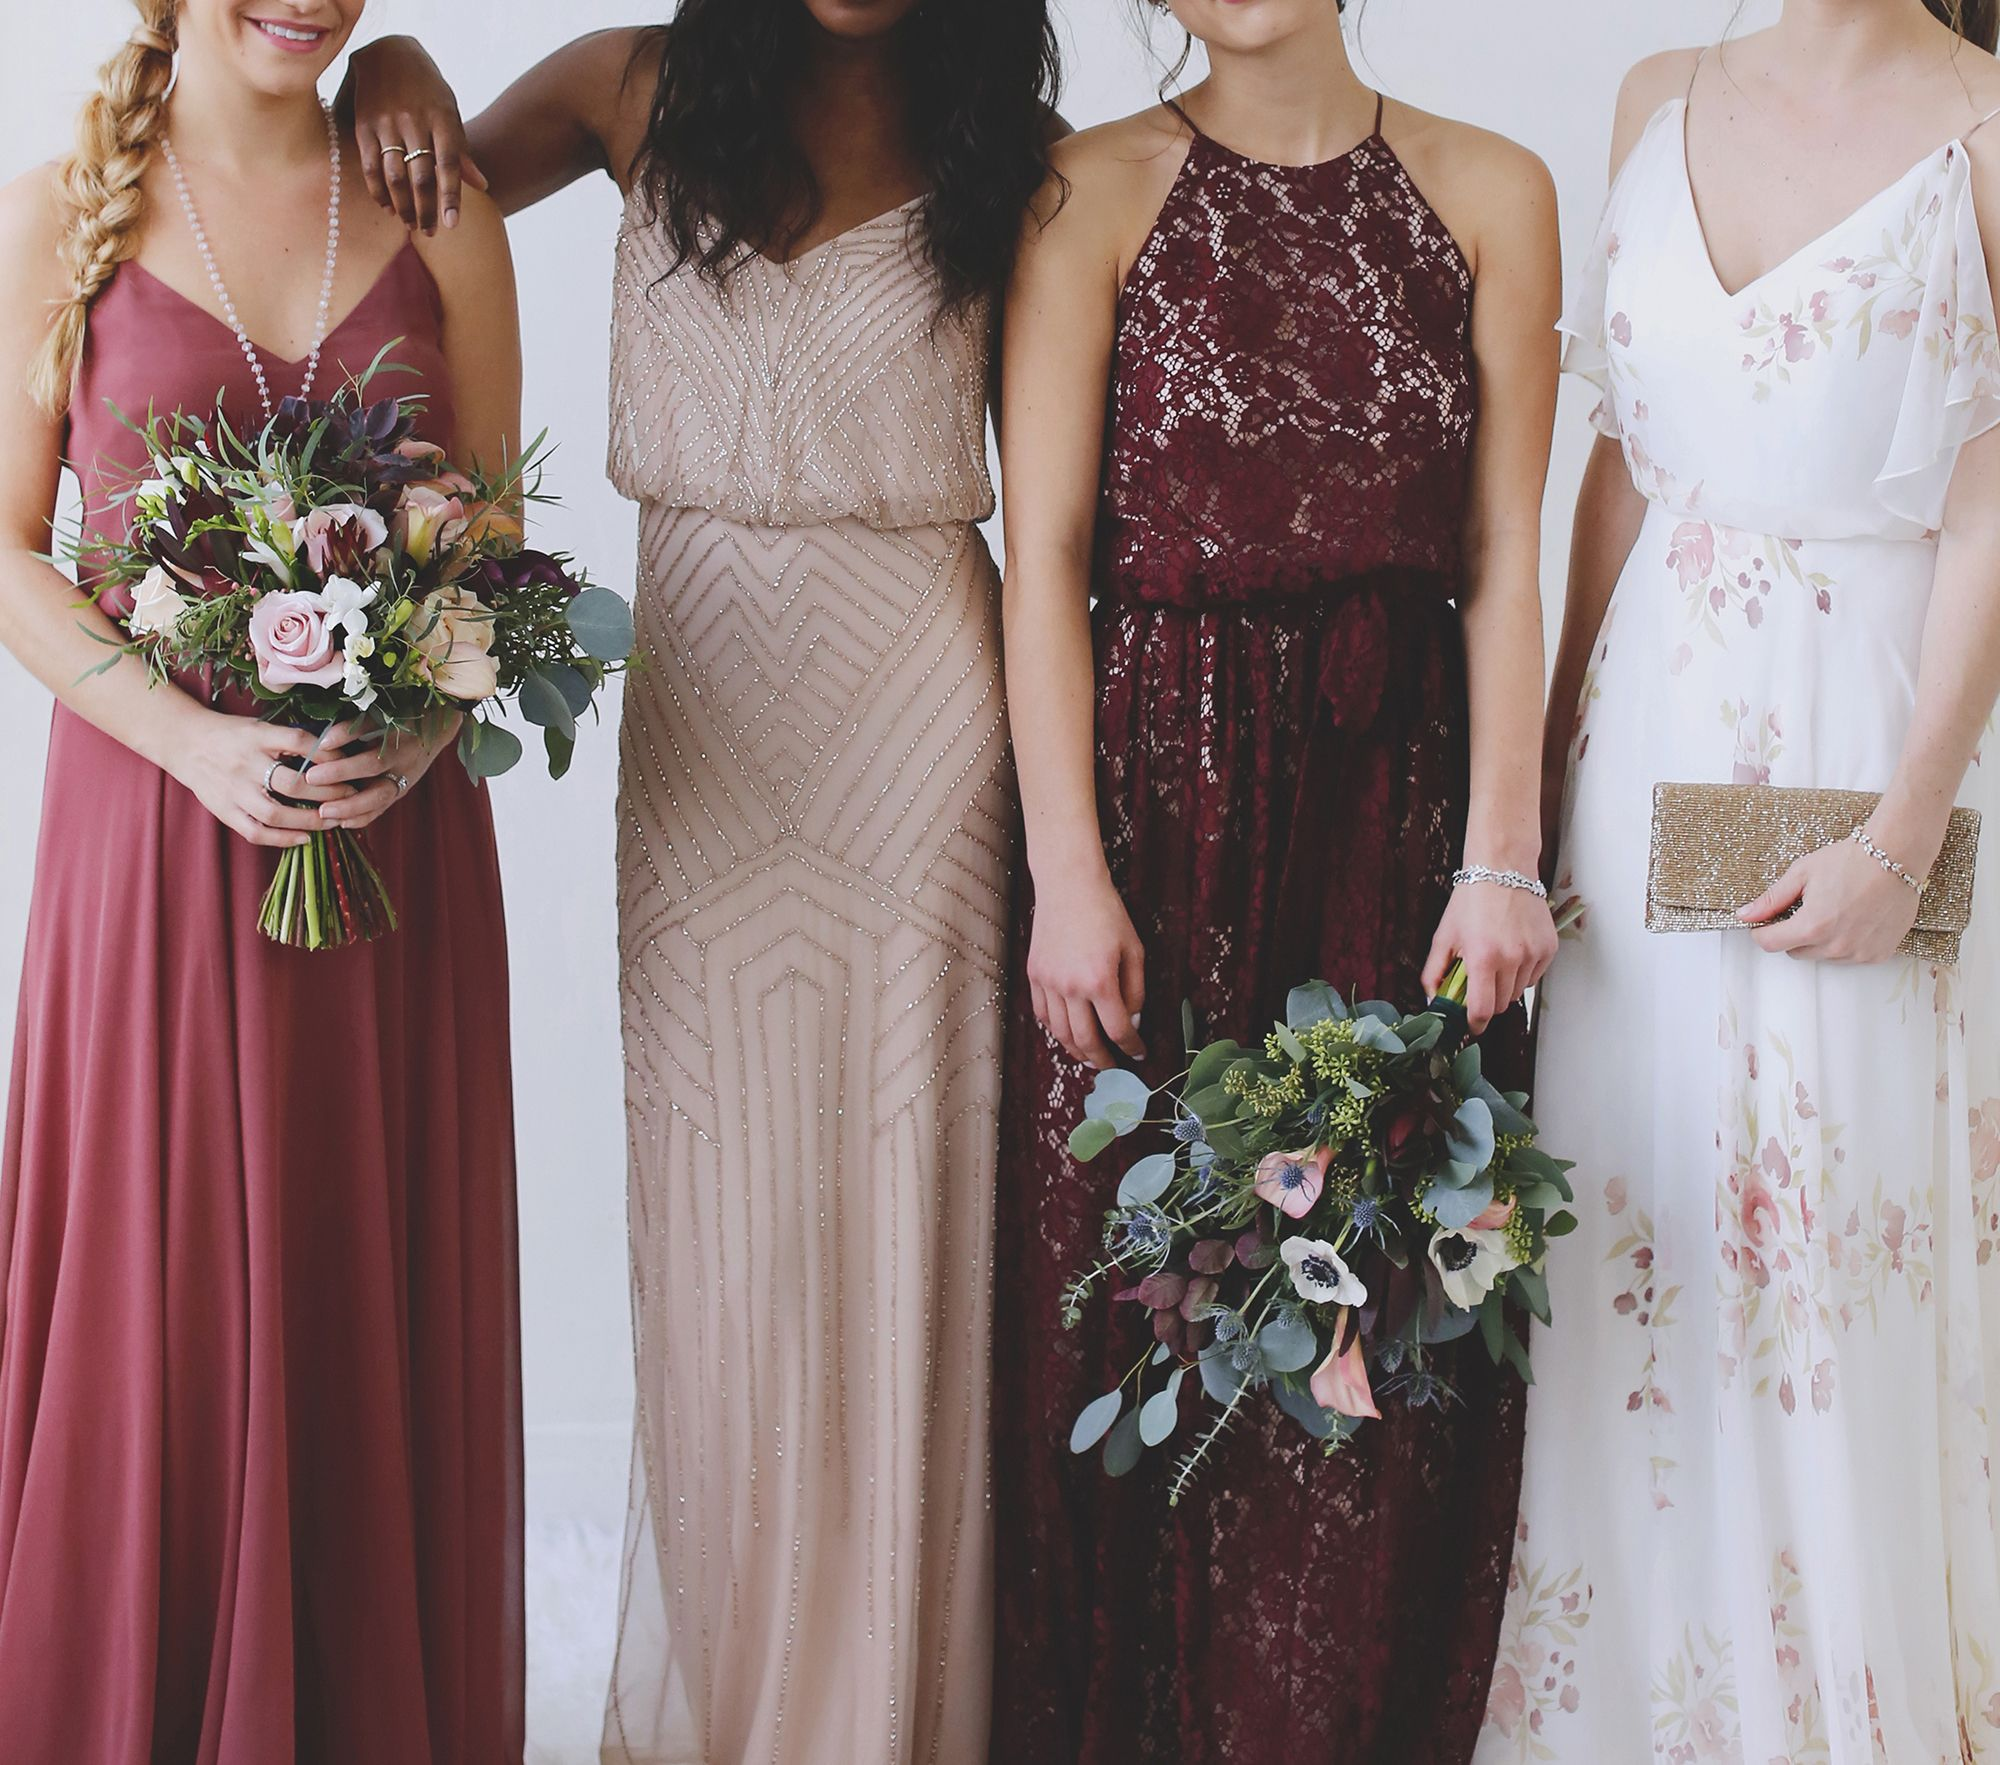 How To Style Mismatched Bridesmaid Dresses